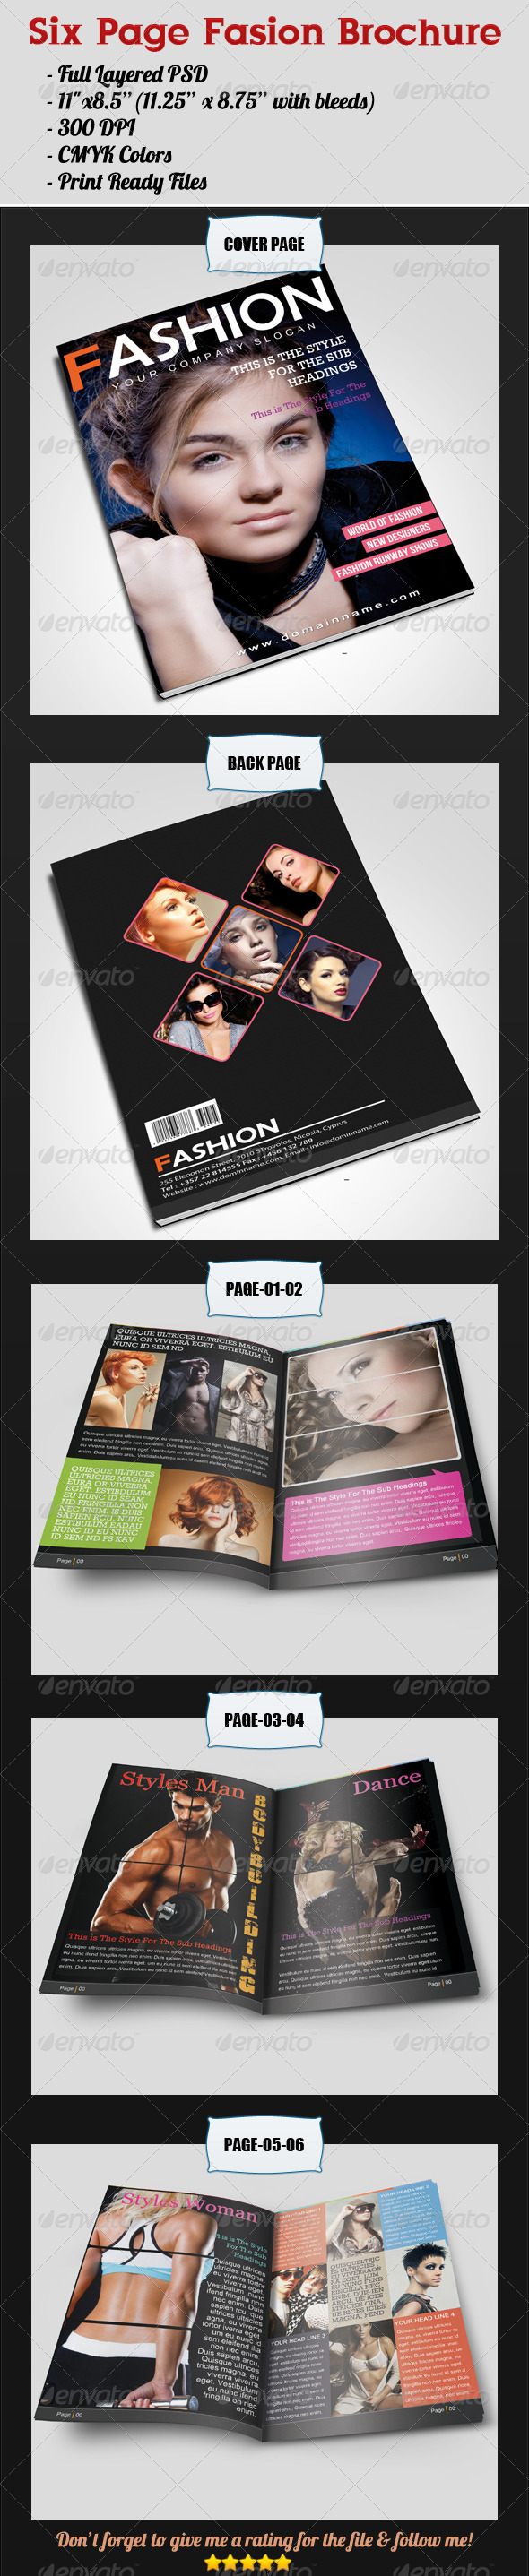 Six Page Fashion Brochure - Brochures Print Templates